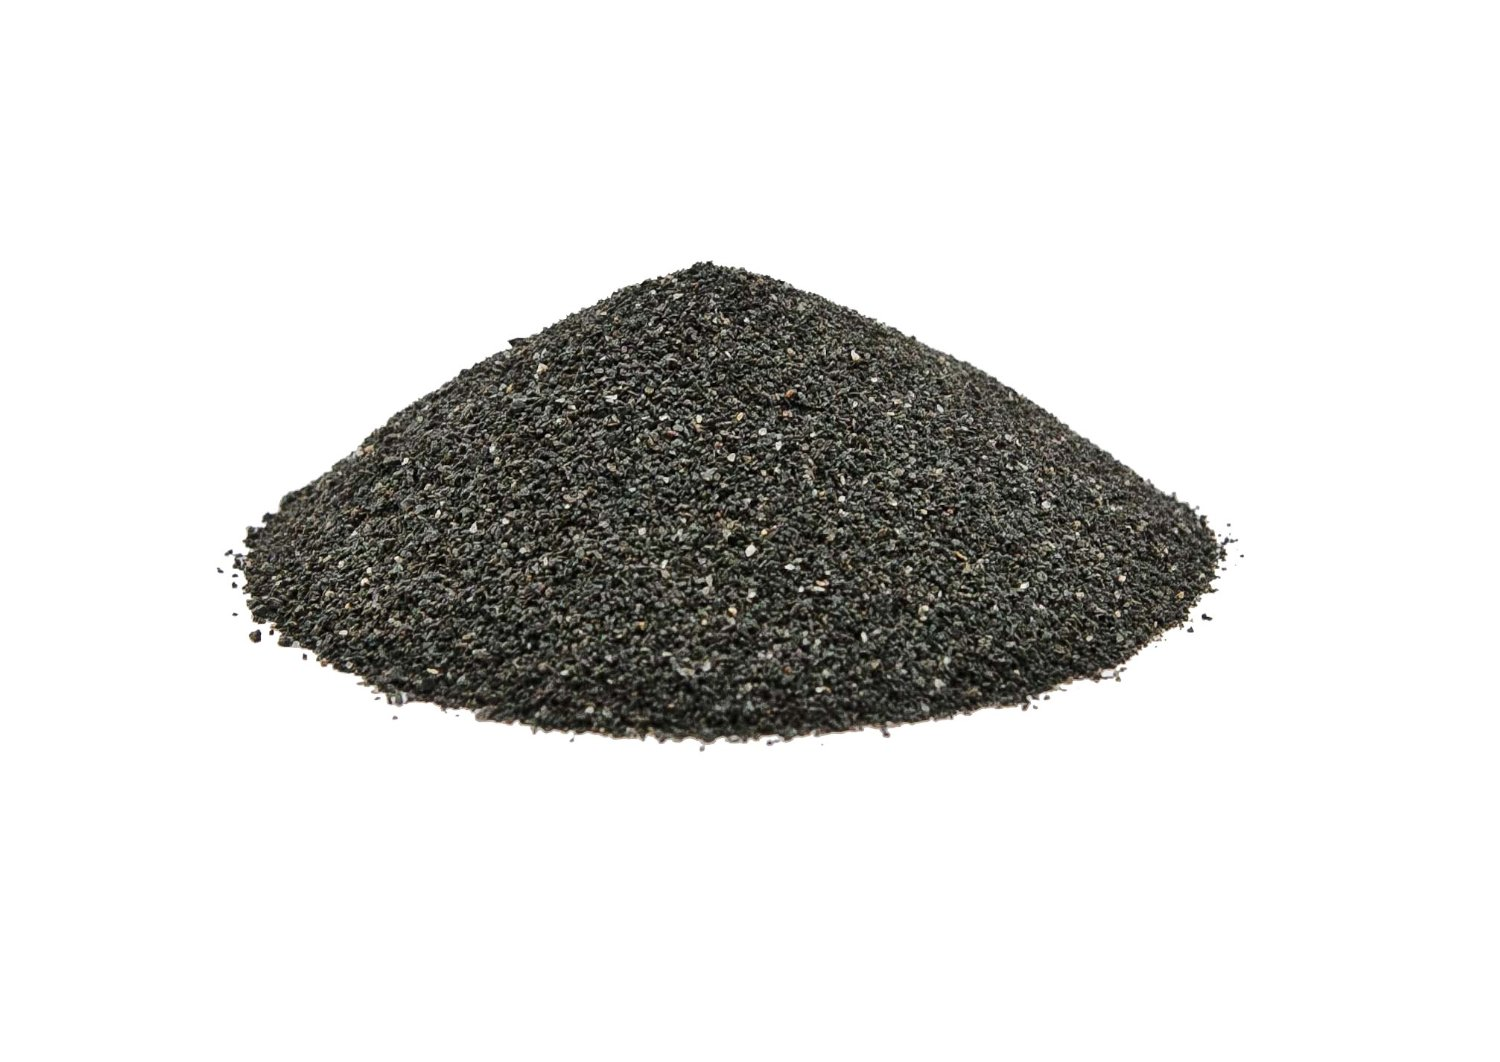 3lbs of Andesite Mineral Complex - 100% Natural Volcanic-Based Soil Conditioner with 8,000+ cgs Certified Paramagnetic Levels